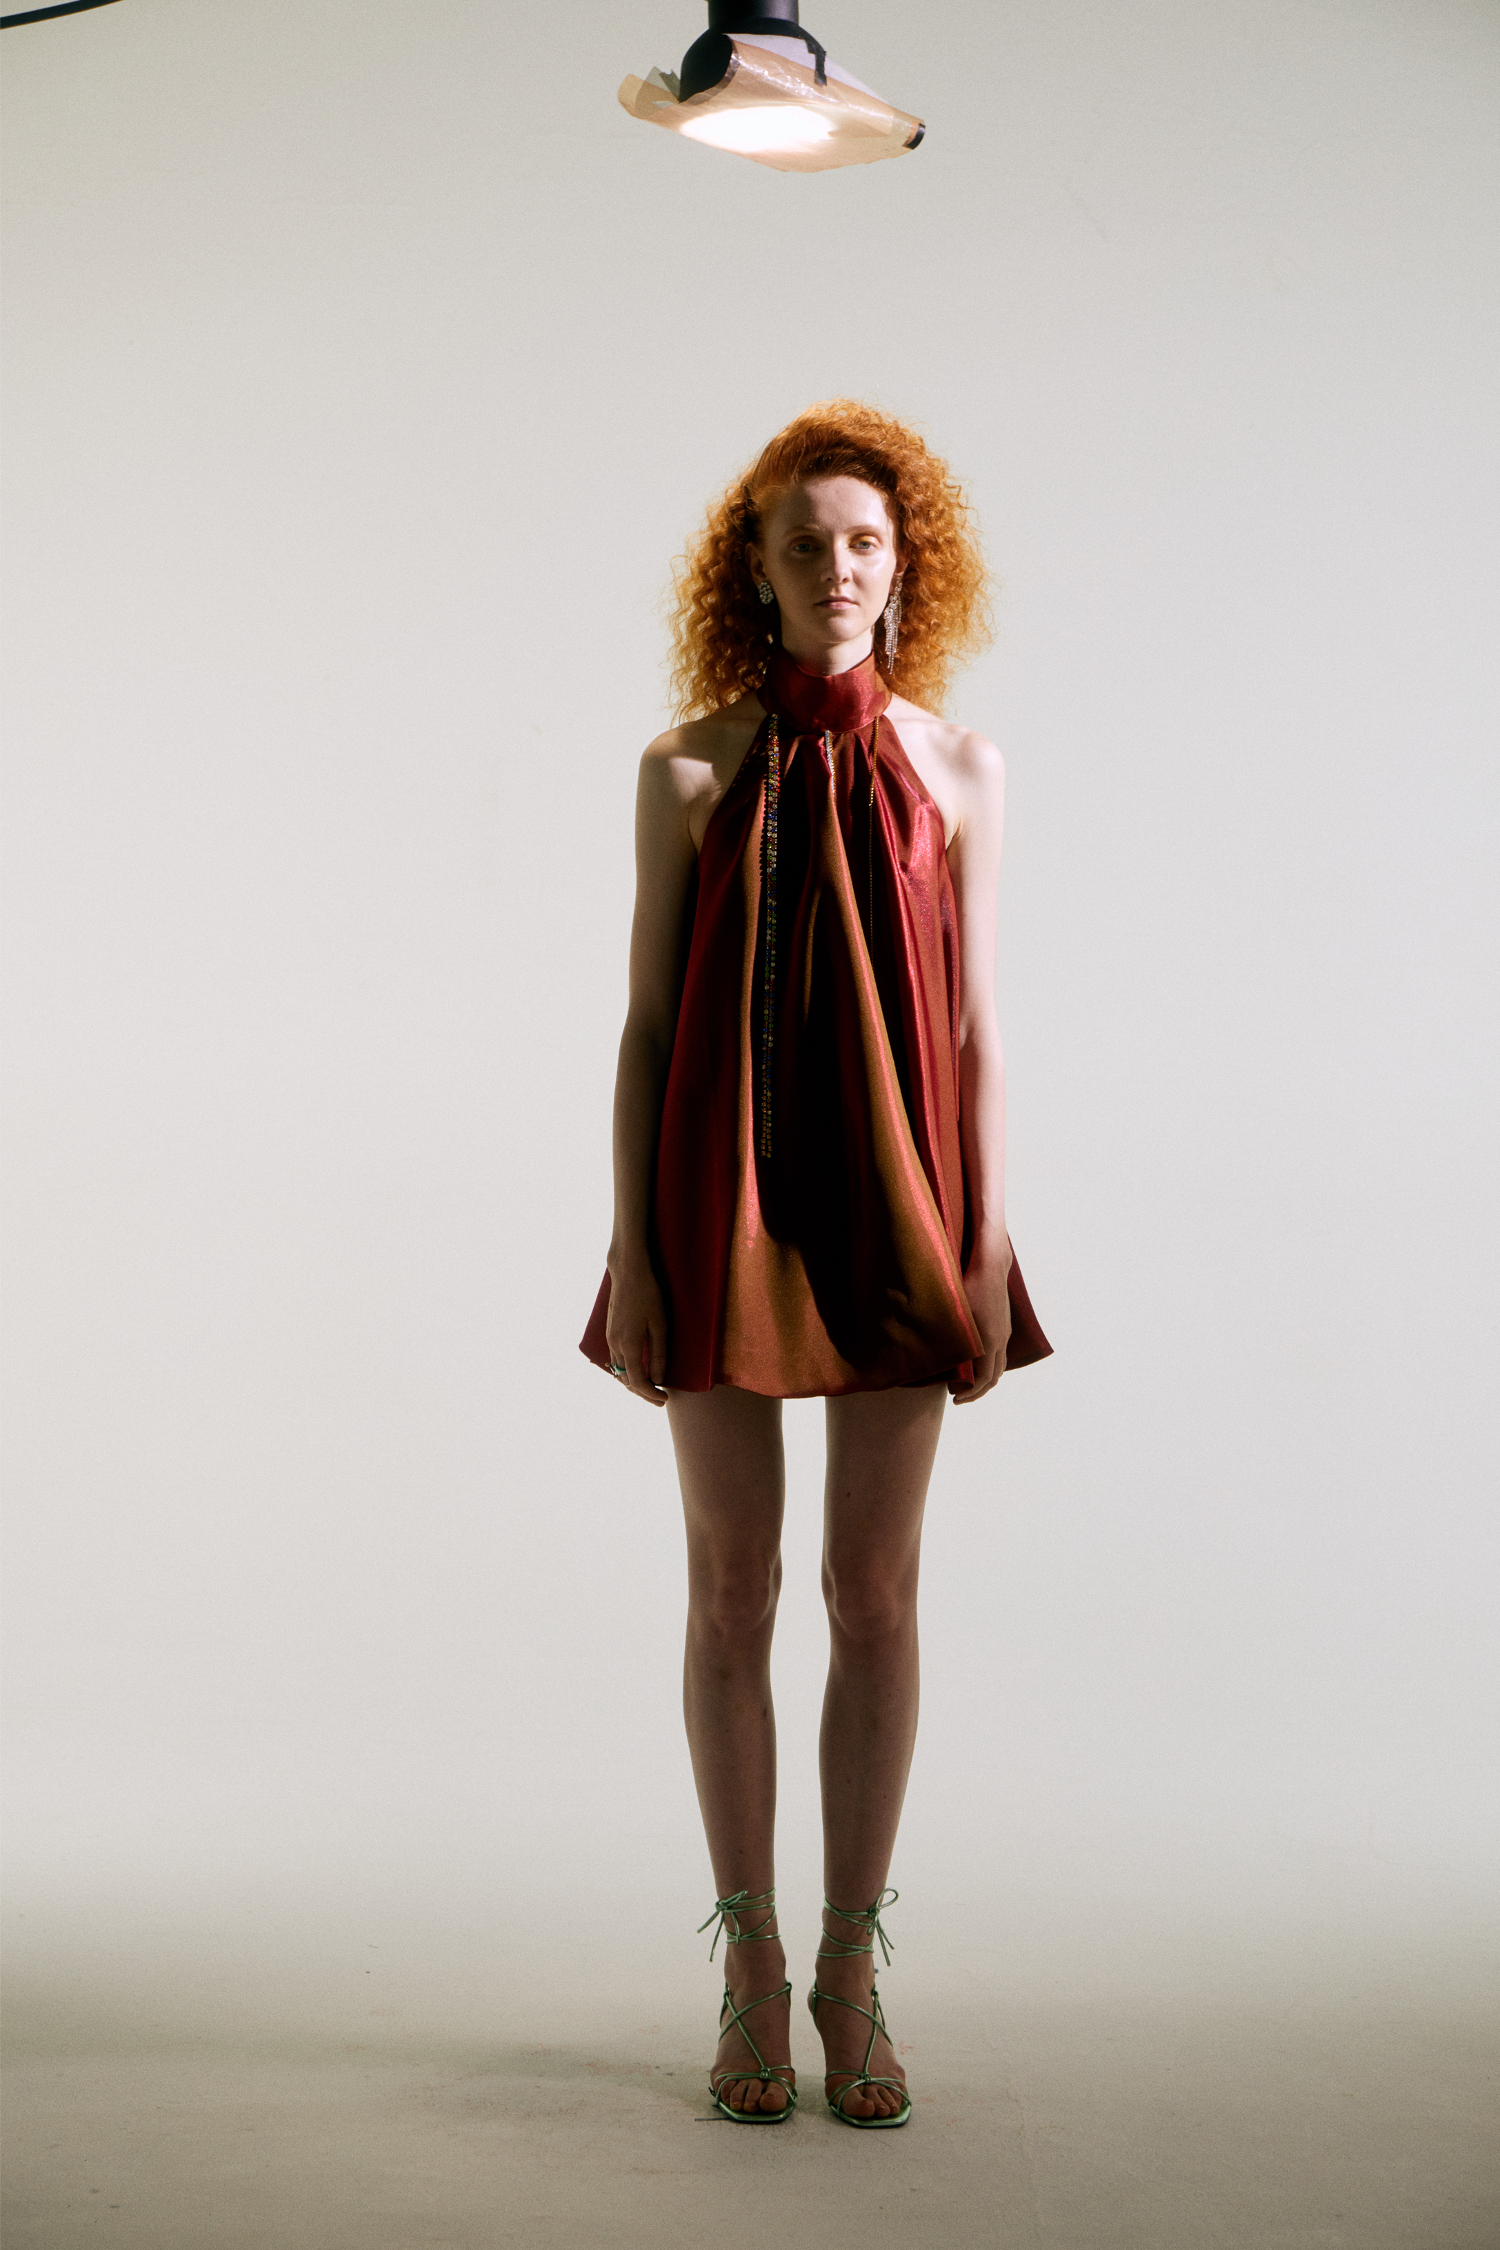 Yolanda Dress by Rue Agthonis on curated-crowd.com